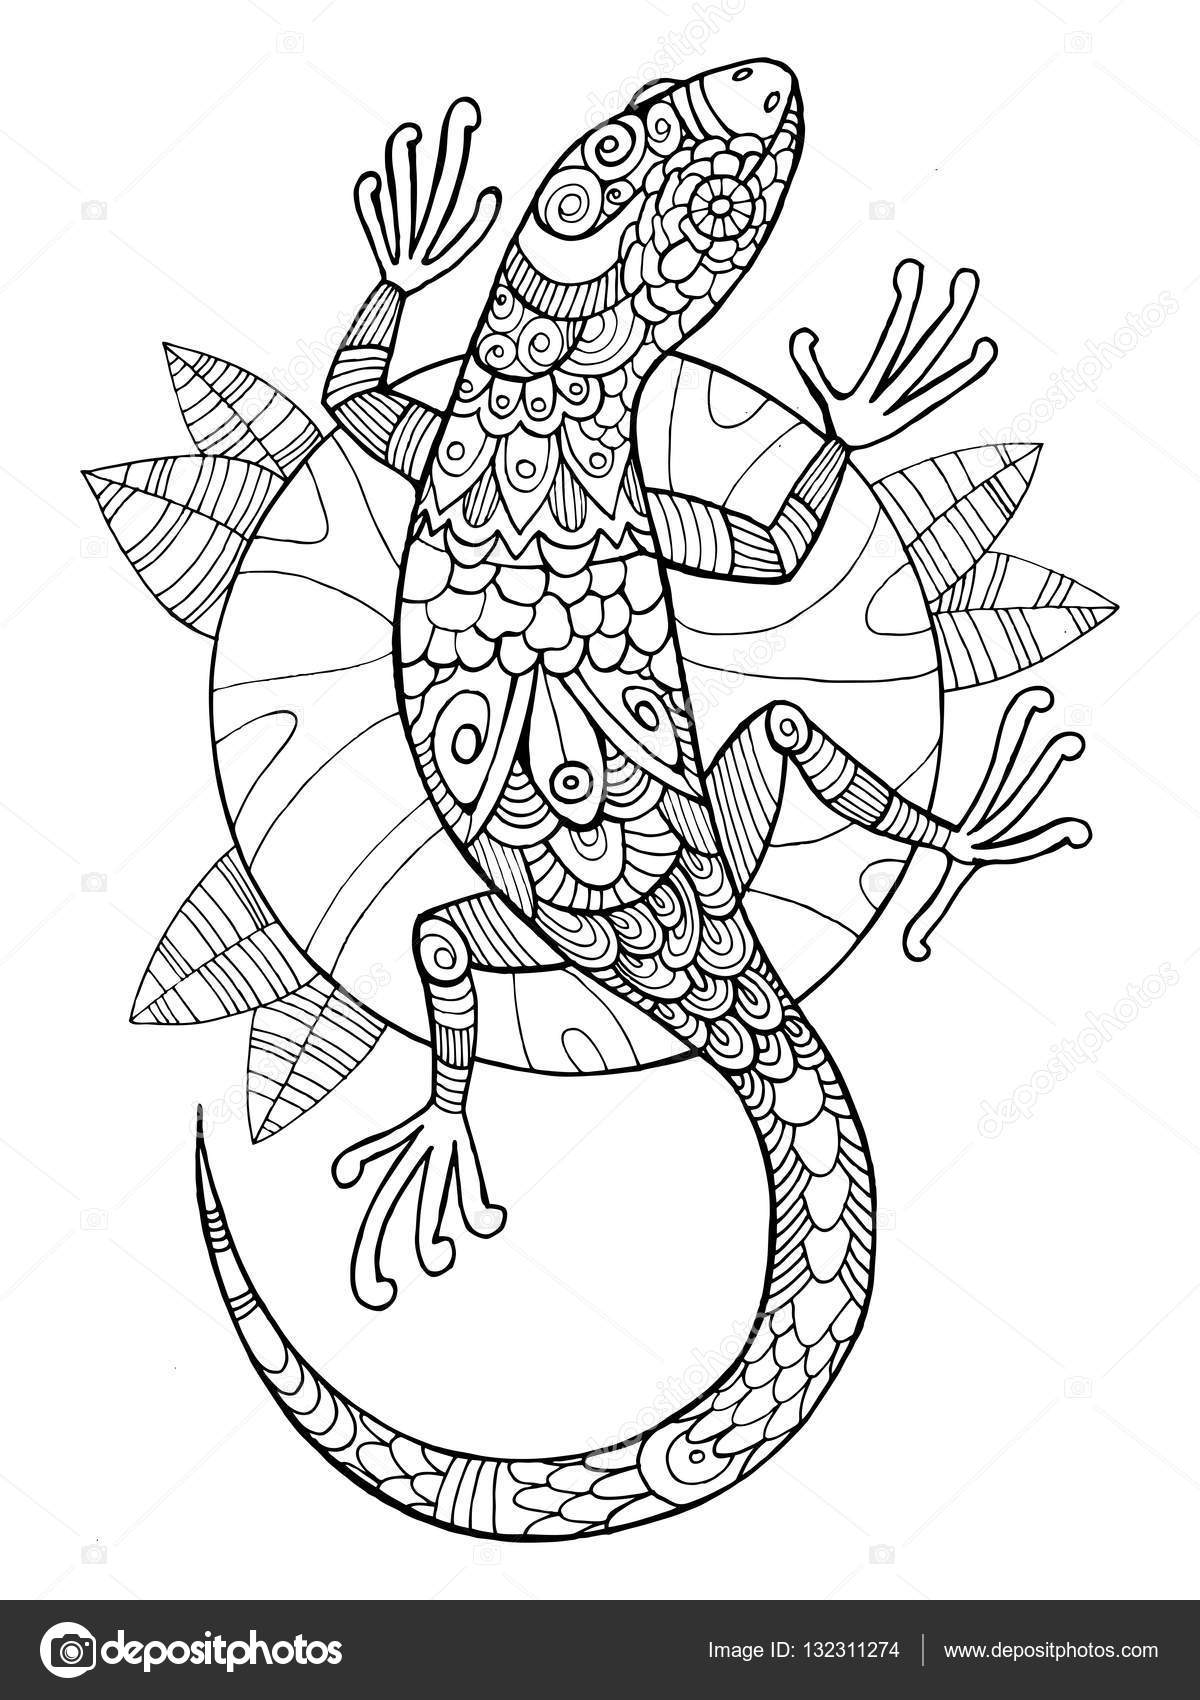 lizard coloring book for adults vector stock vector